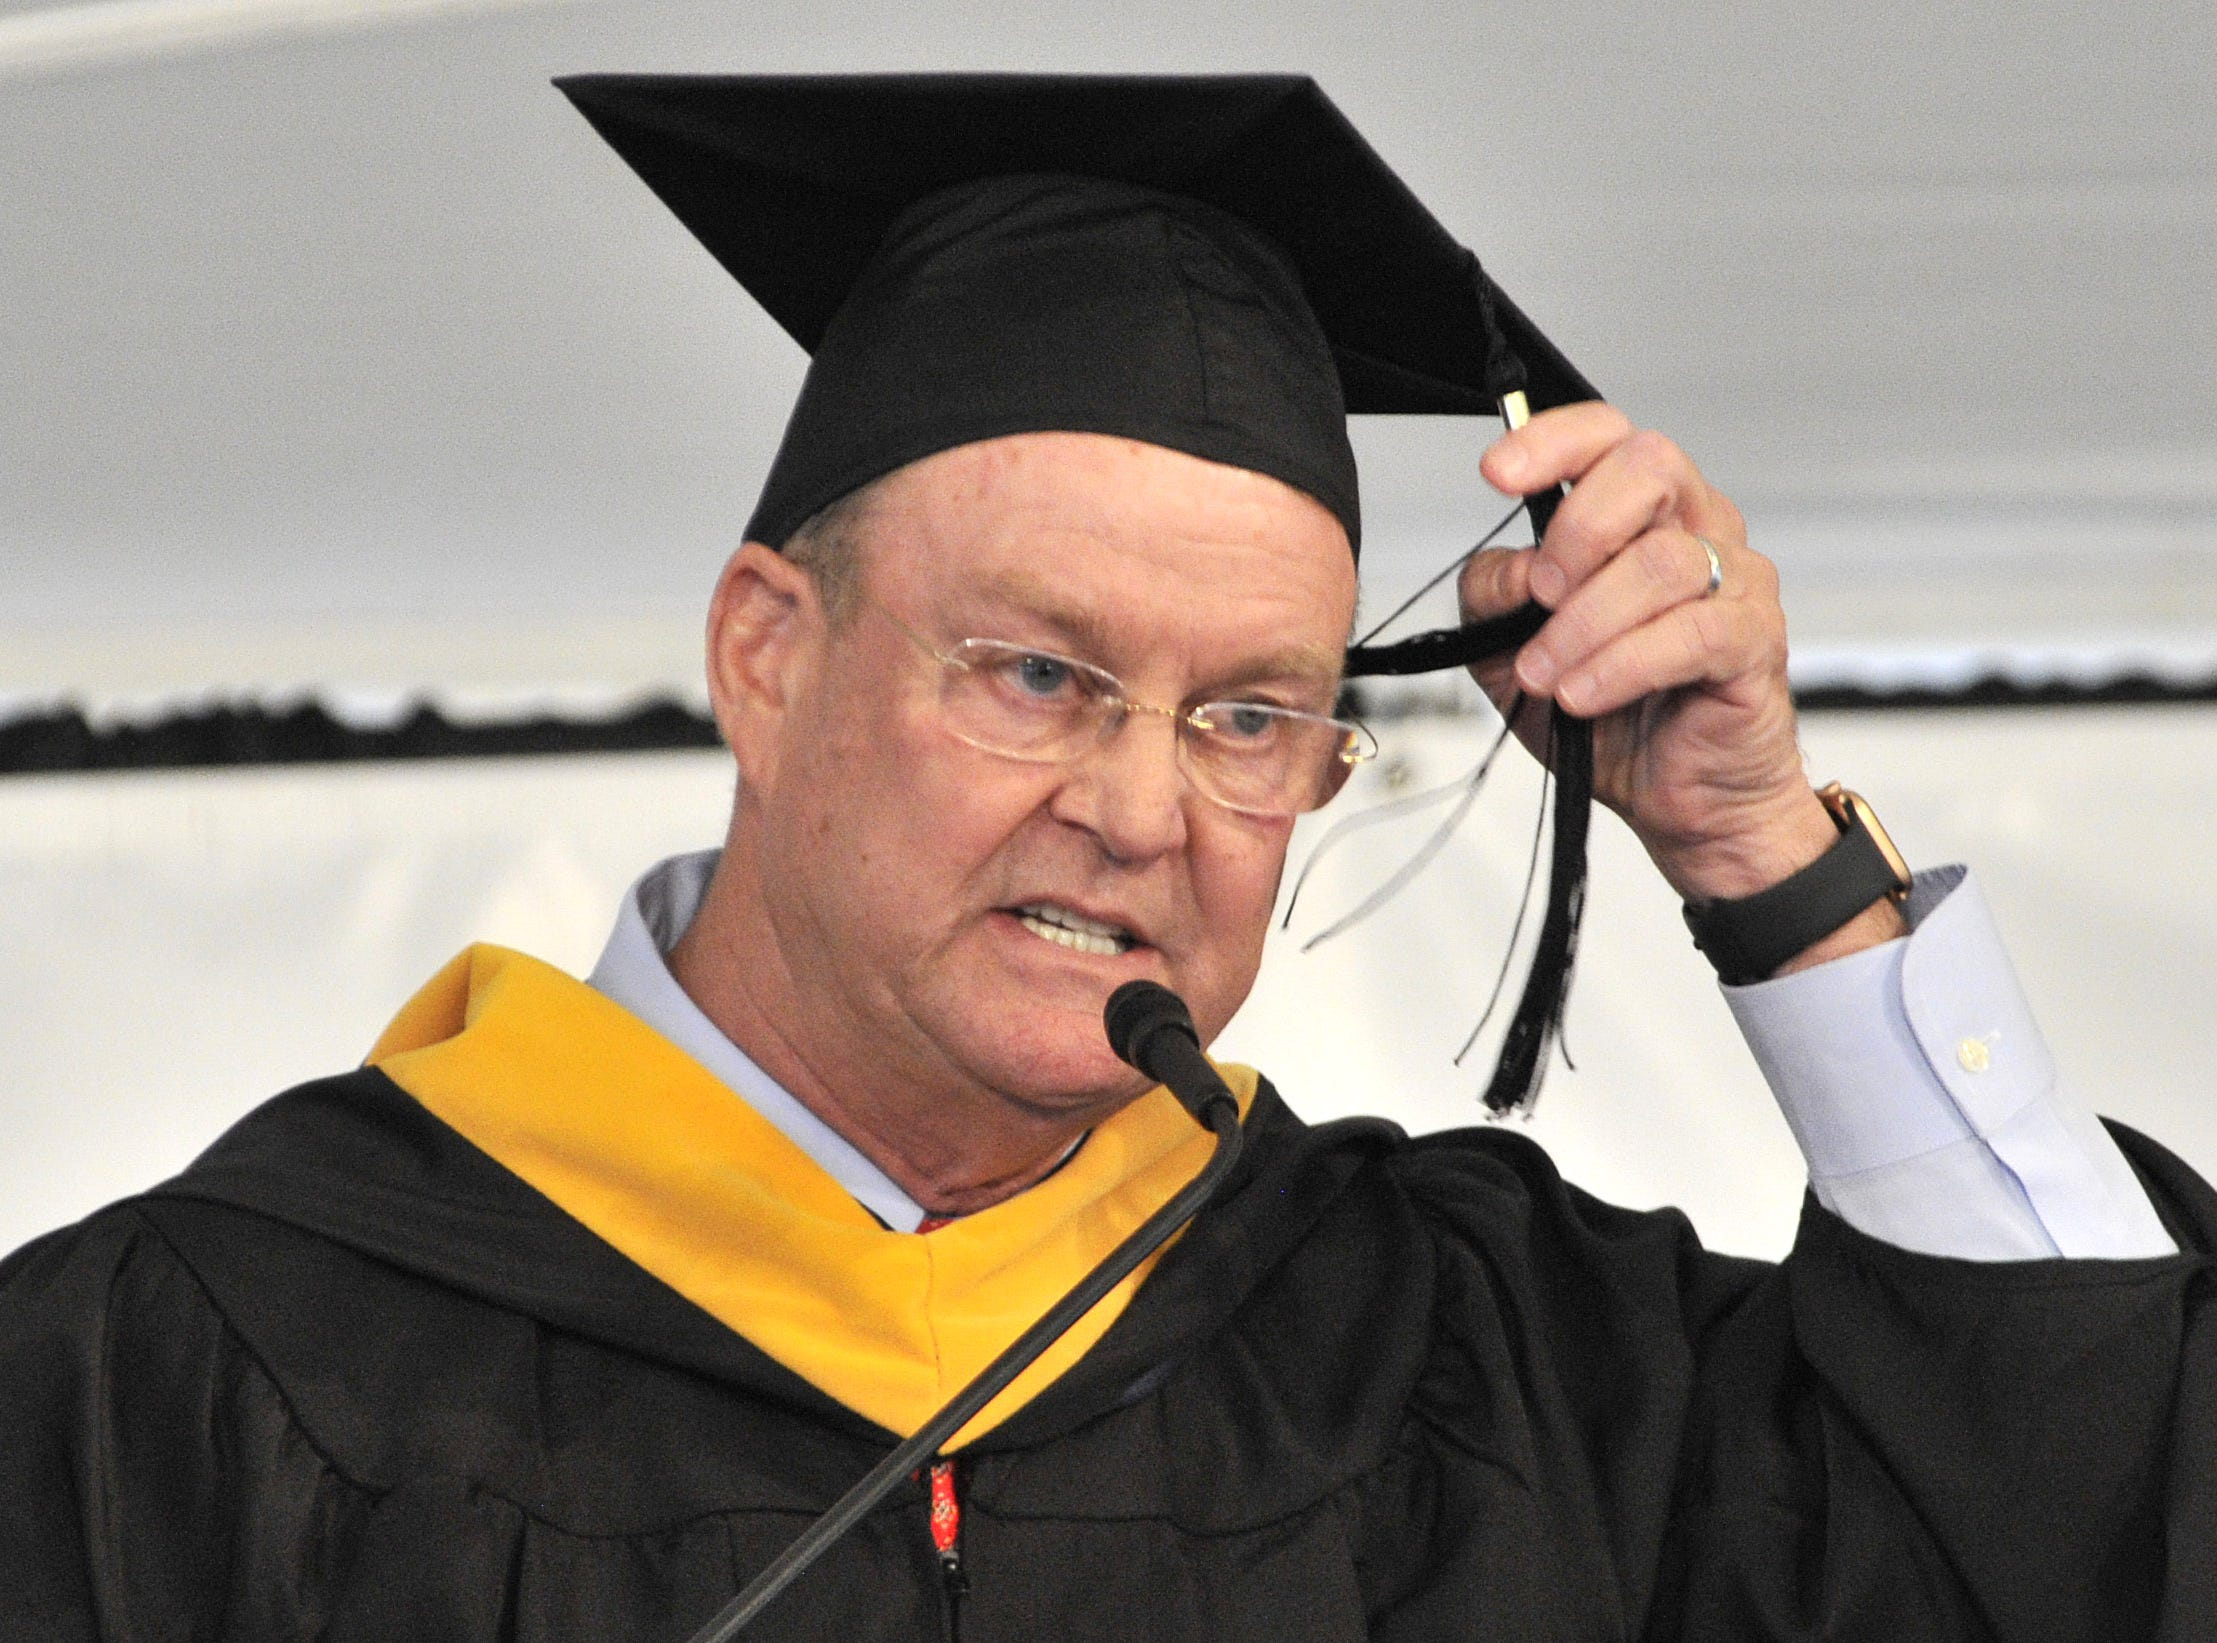 DelTech commencement speaker Terence M. Murphy, president and chief executive officer of Bayhealth, Inc.